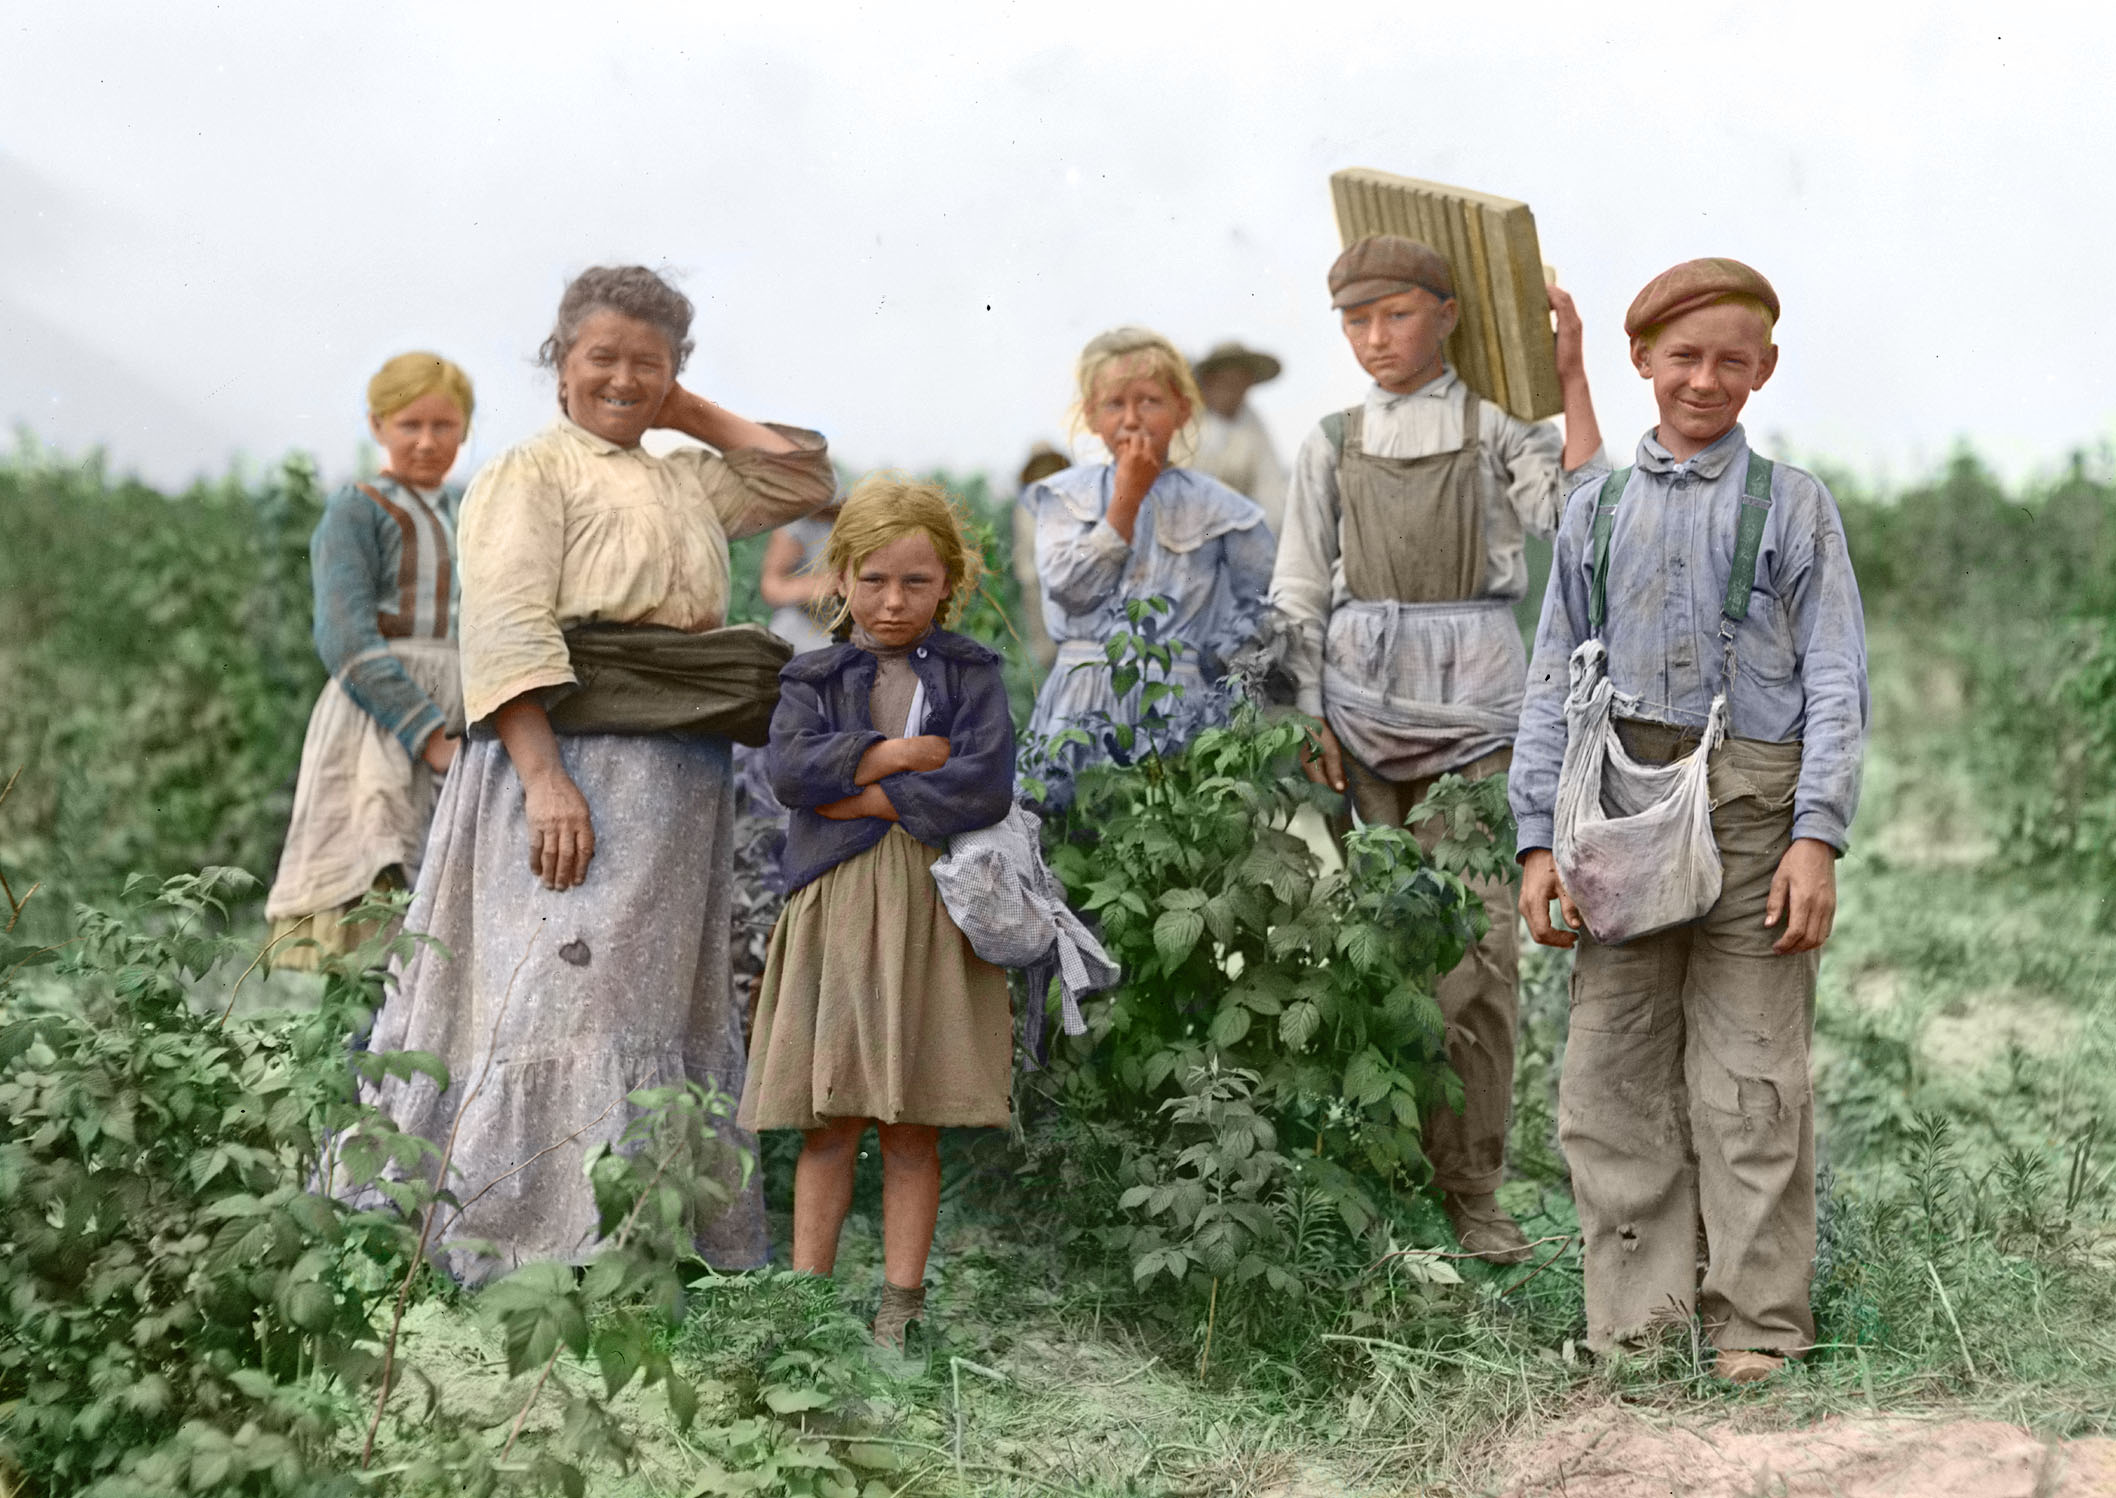 Polish immigrants in the United States, 1909.